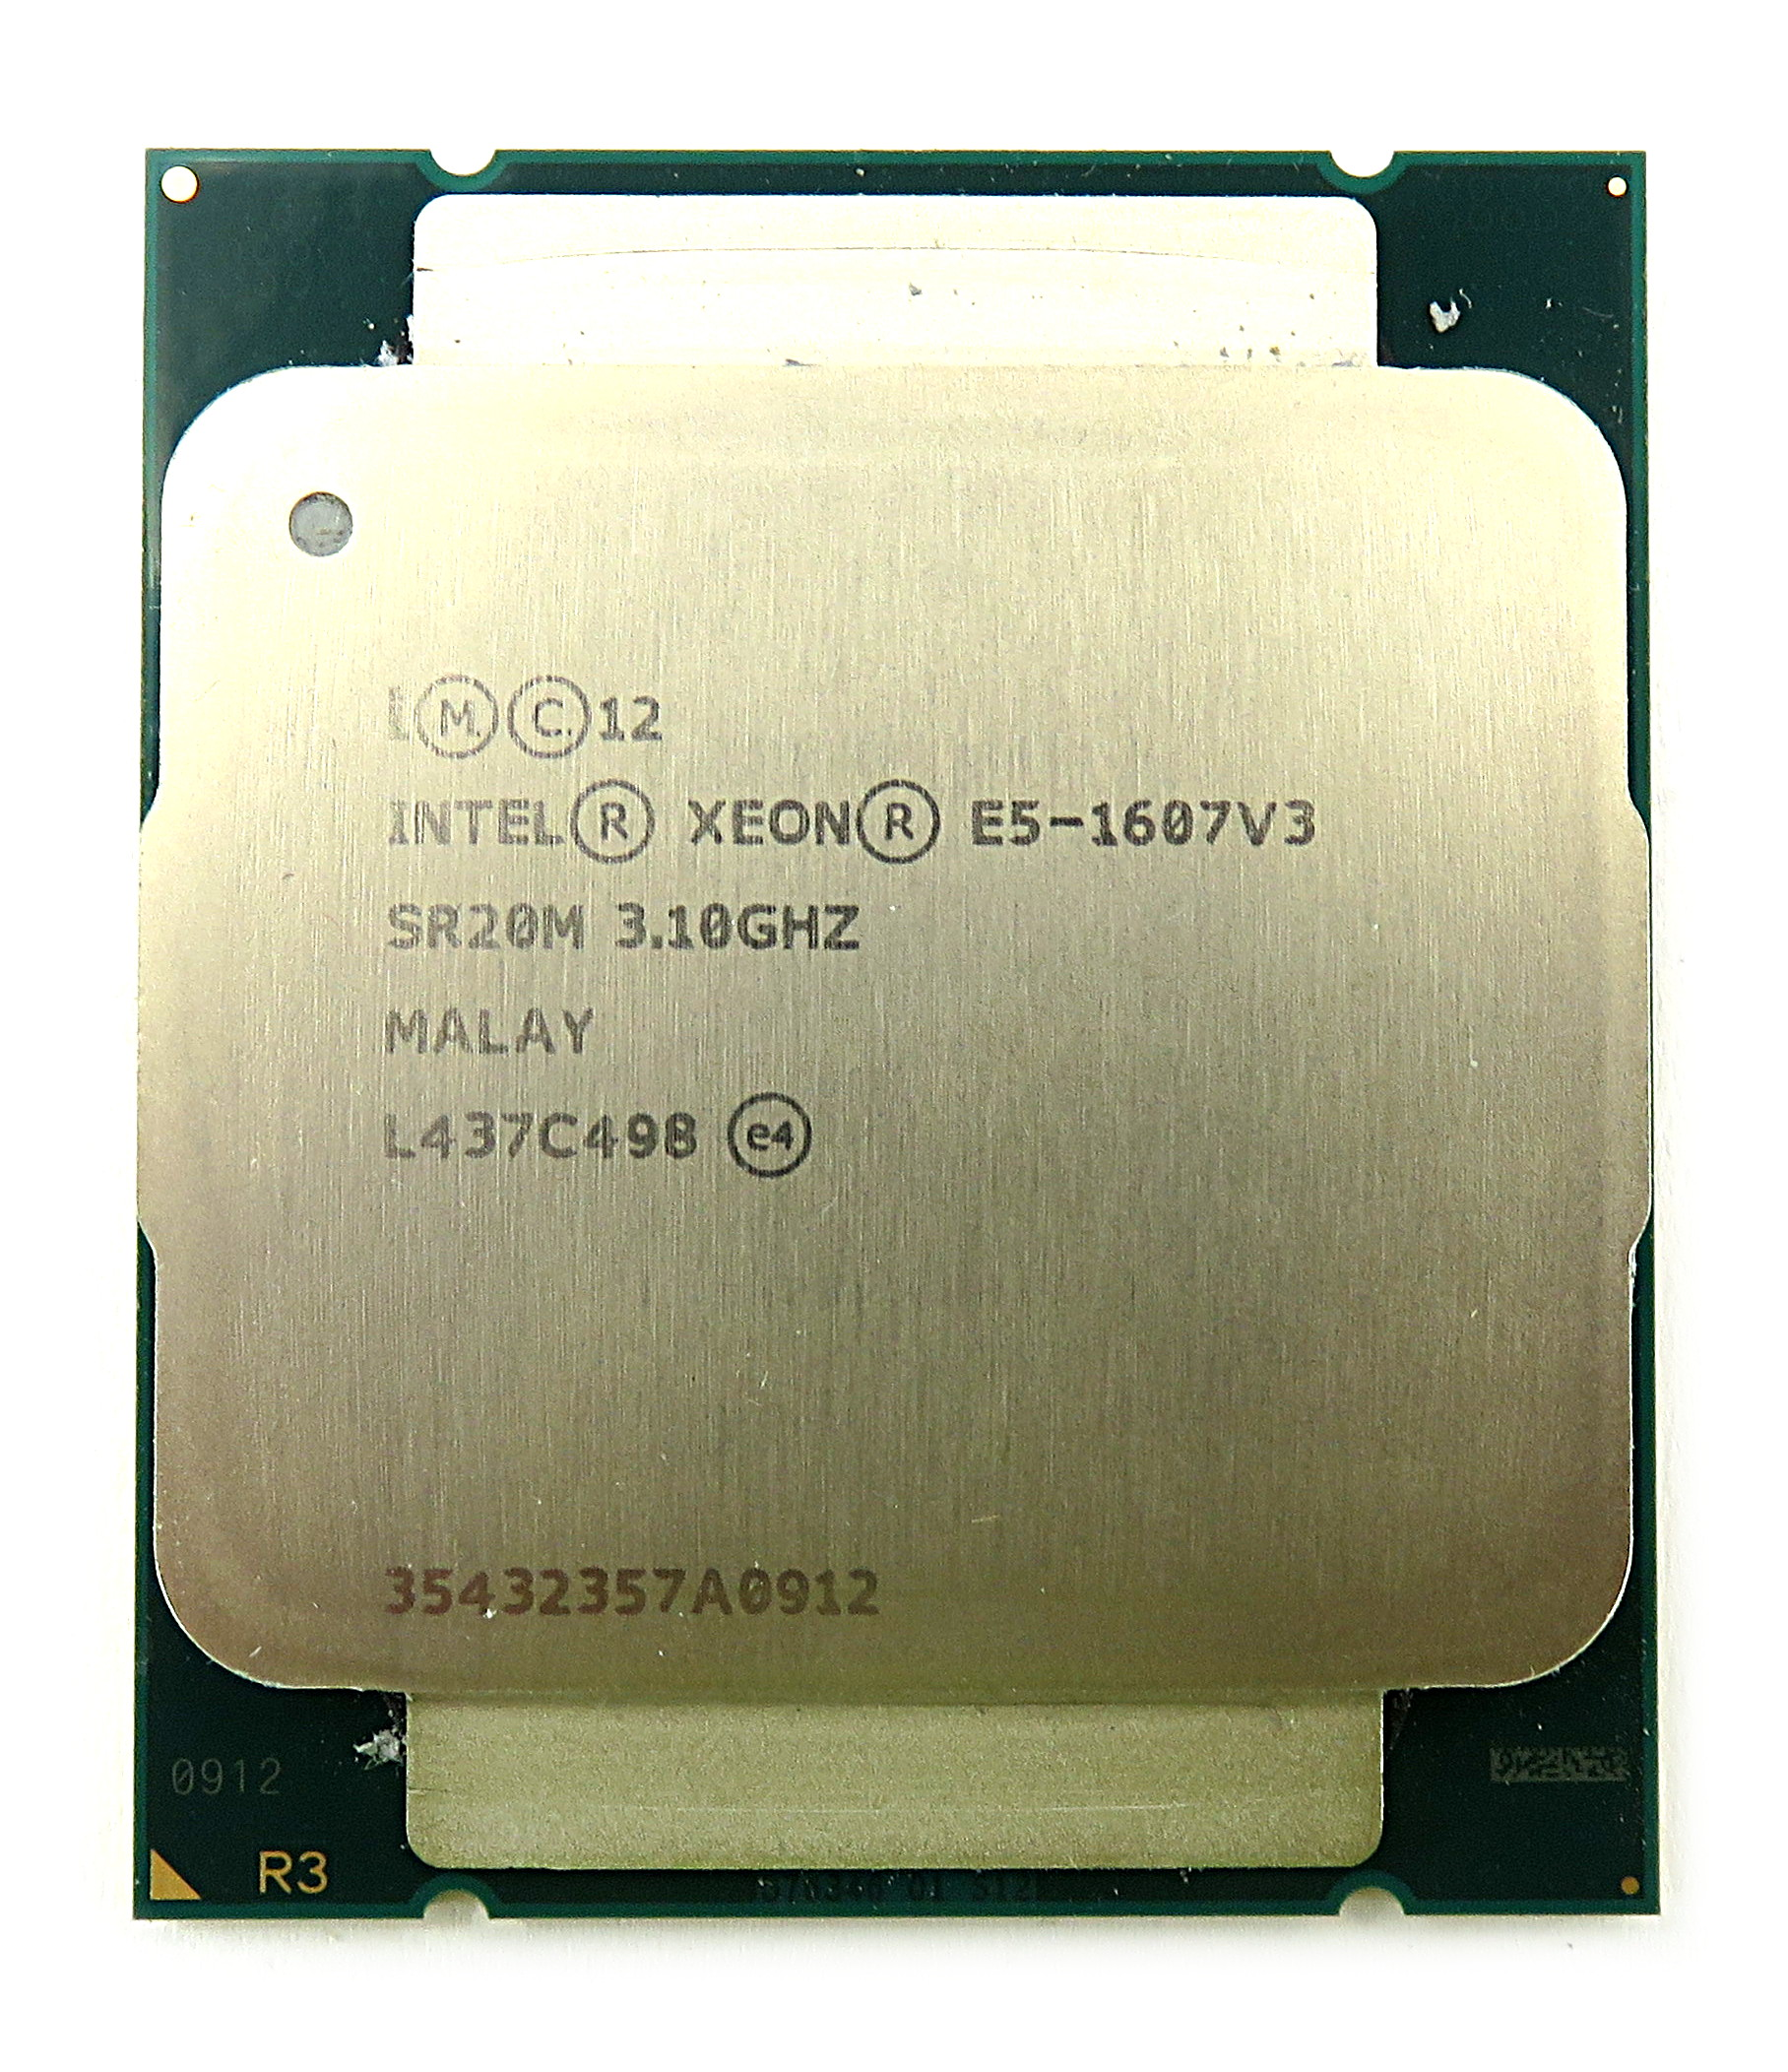 Intel Xeon E5-1607 V3 SR20M Quad-Core 3.1GHz 10MB Socket 2011-3 Haswell-EP CPU